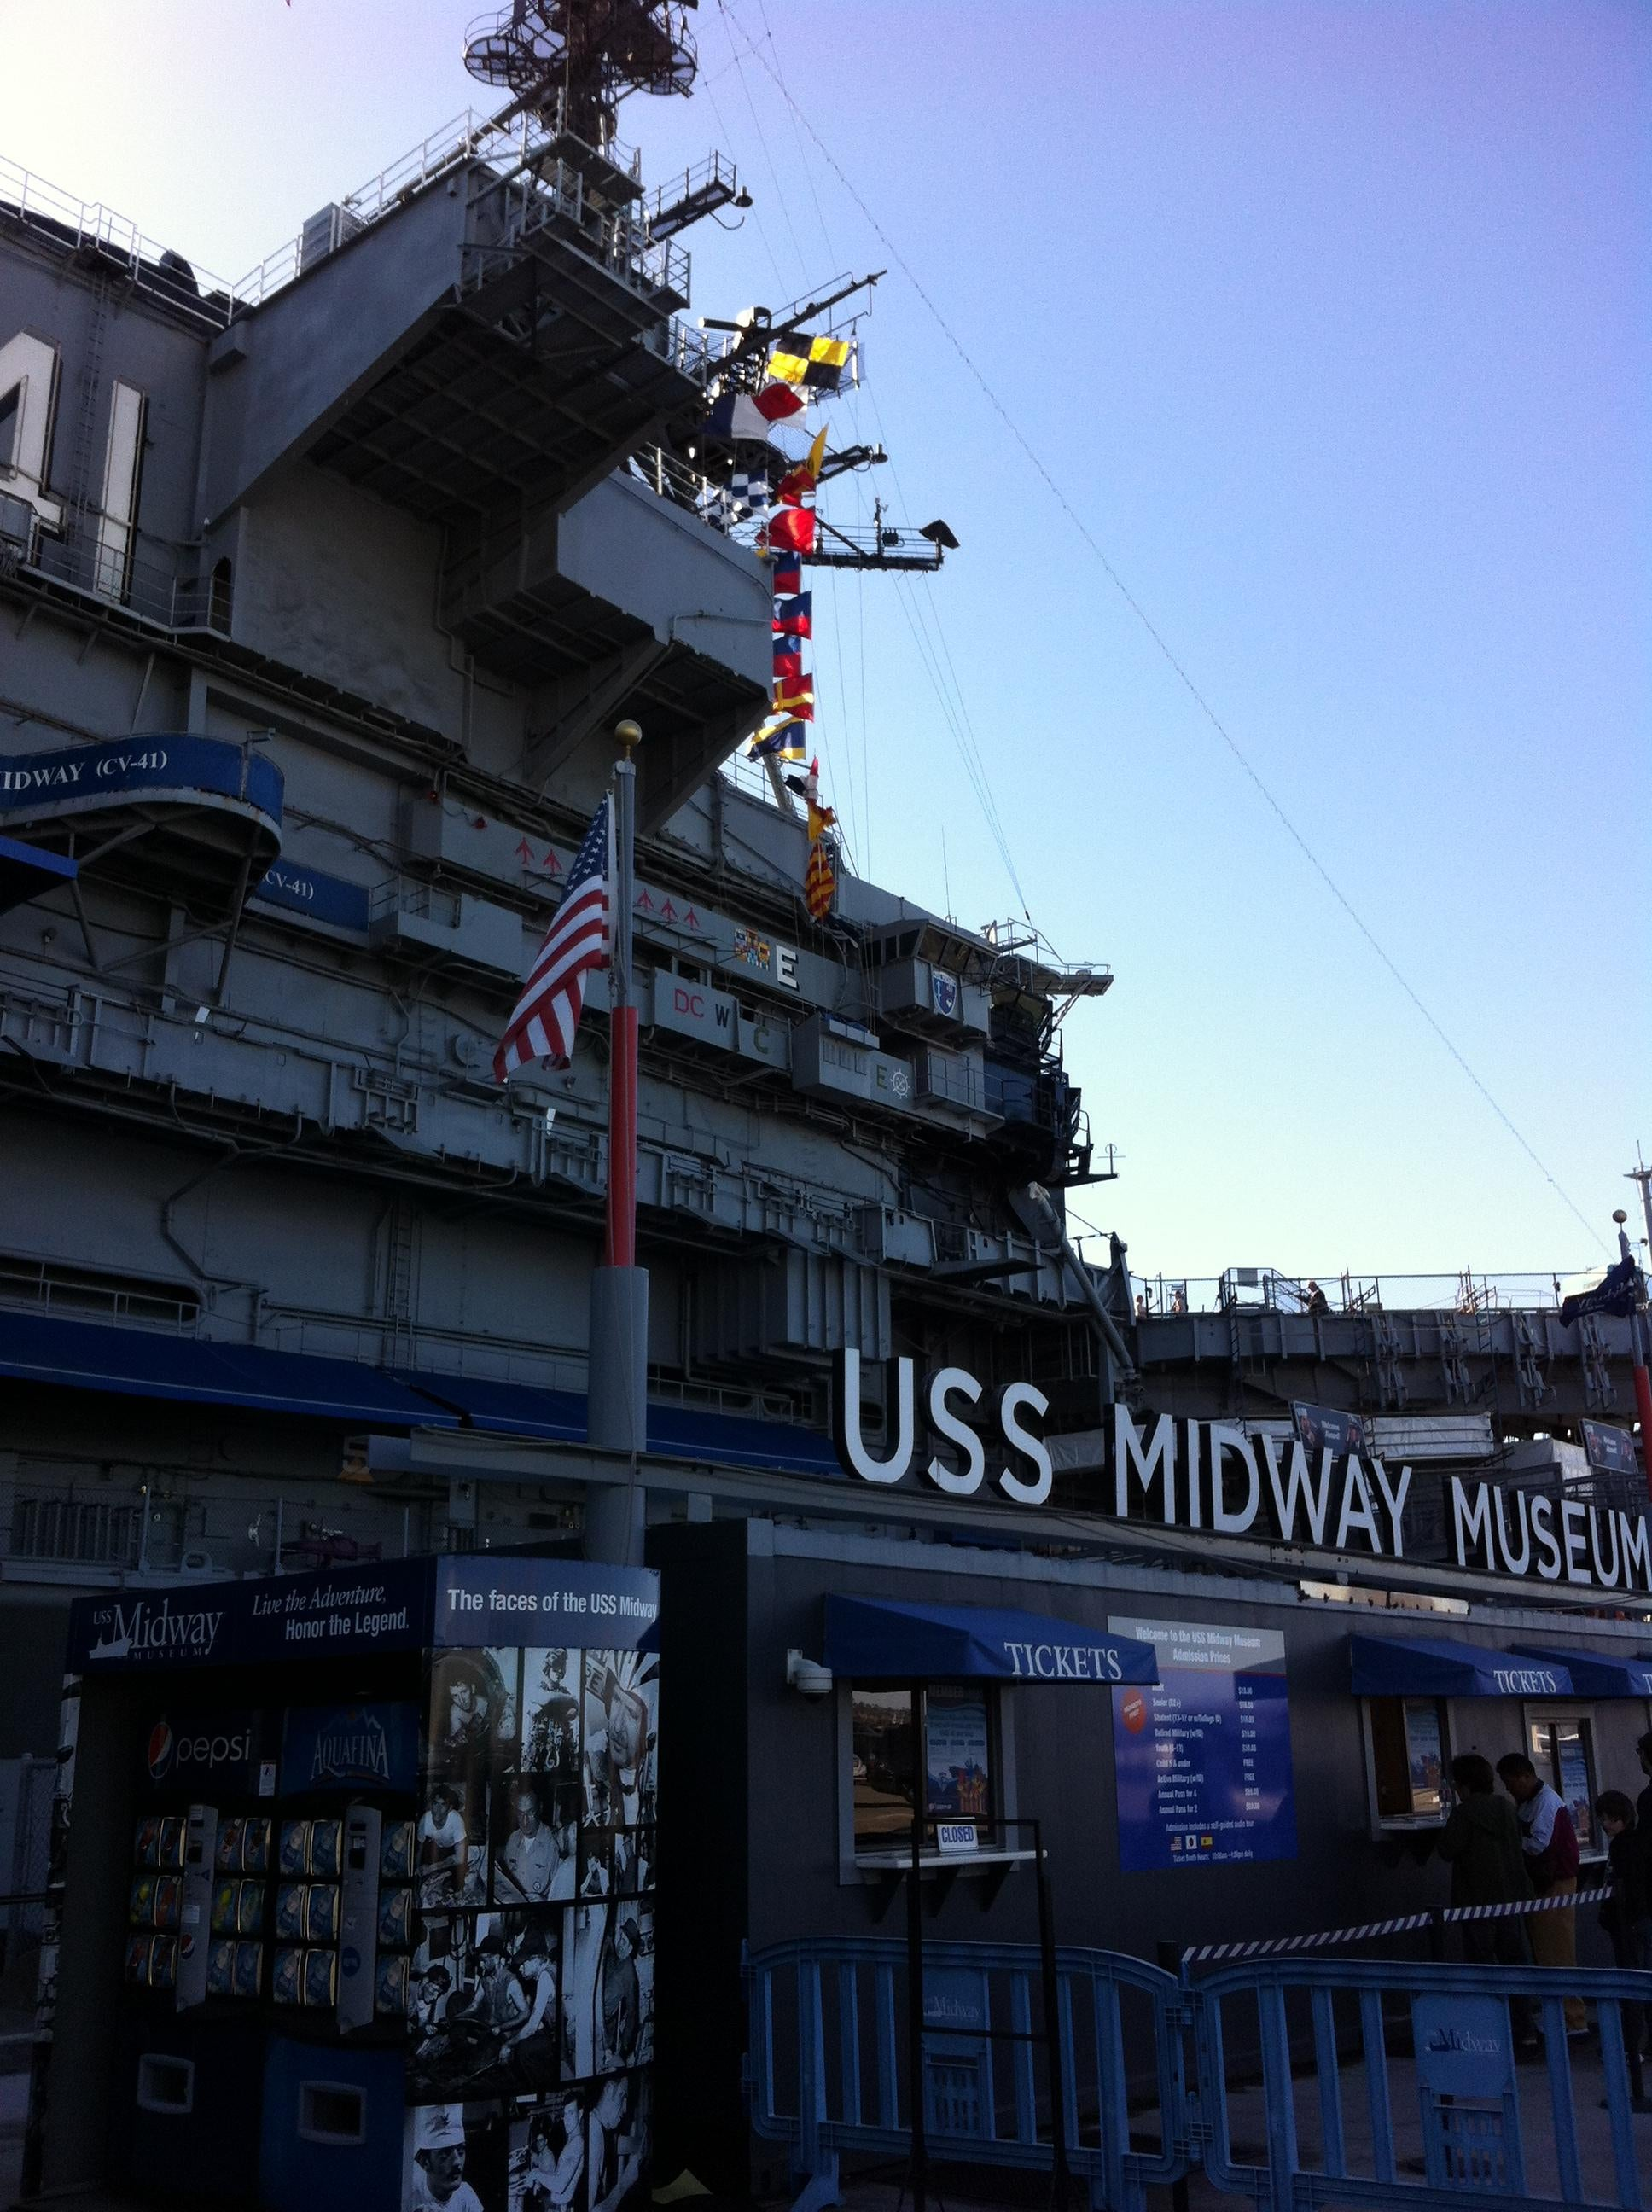 Anochecer en USS Midway Museum